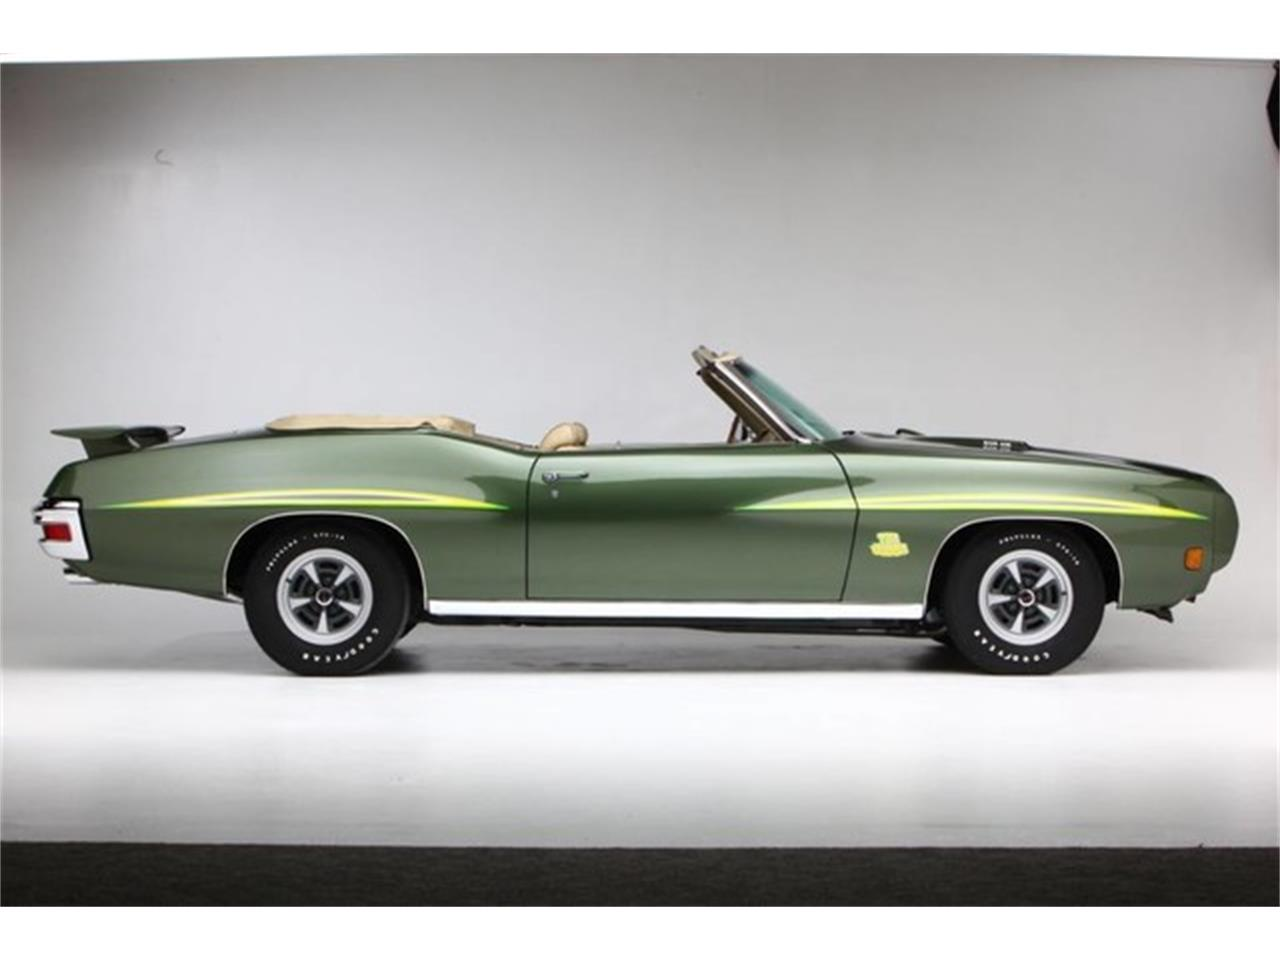 Large Picture of Classic 1970 GTO (The Judge) - $219,000.00 - PU25